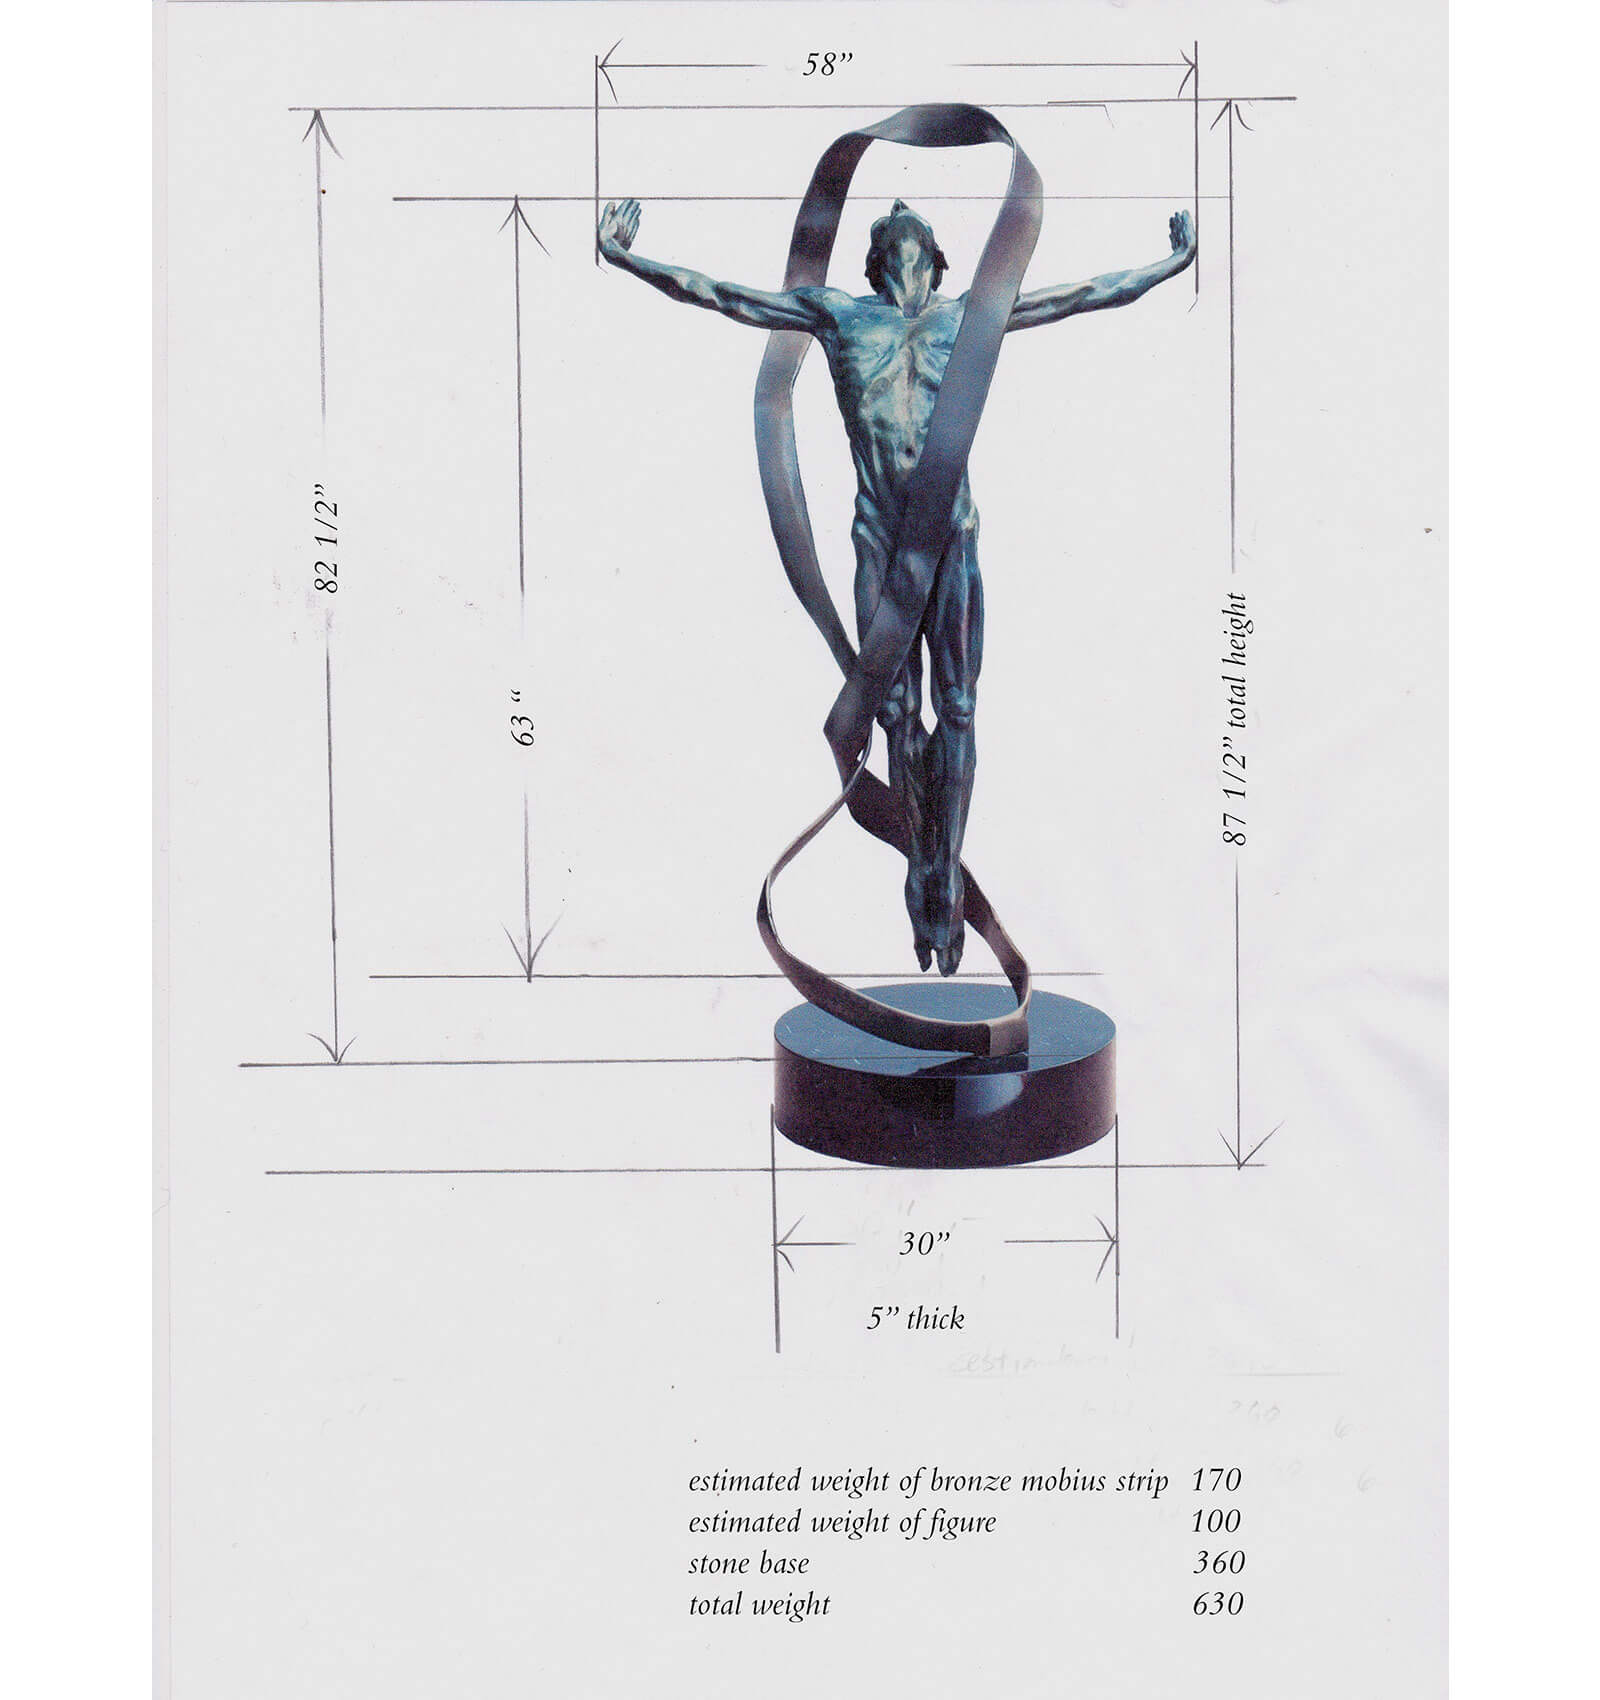 Dimensions of the new commission of Echoes a figurative dance bronze sculpture of a male dancer suspended by a Mobius strip copyright 2014 by Andrew DeVries